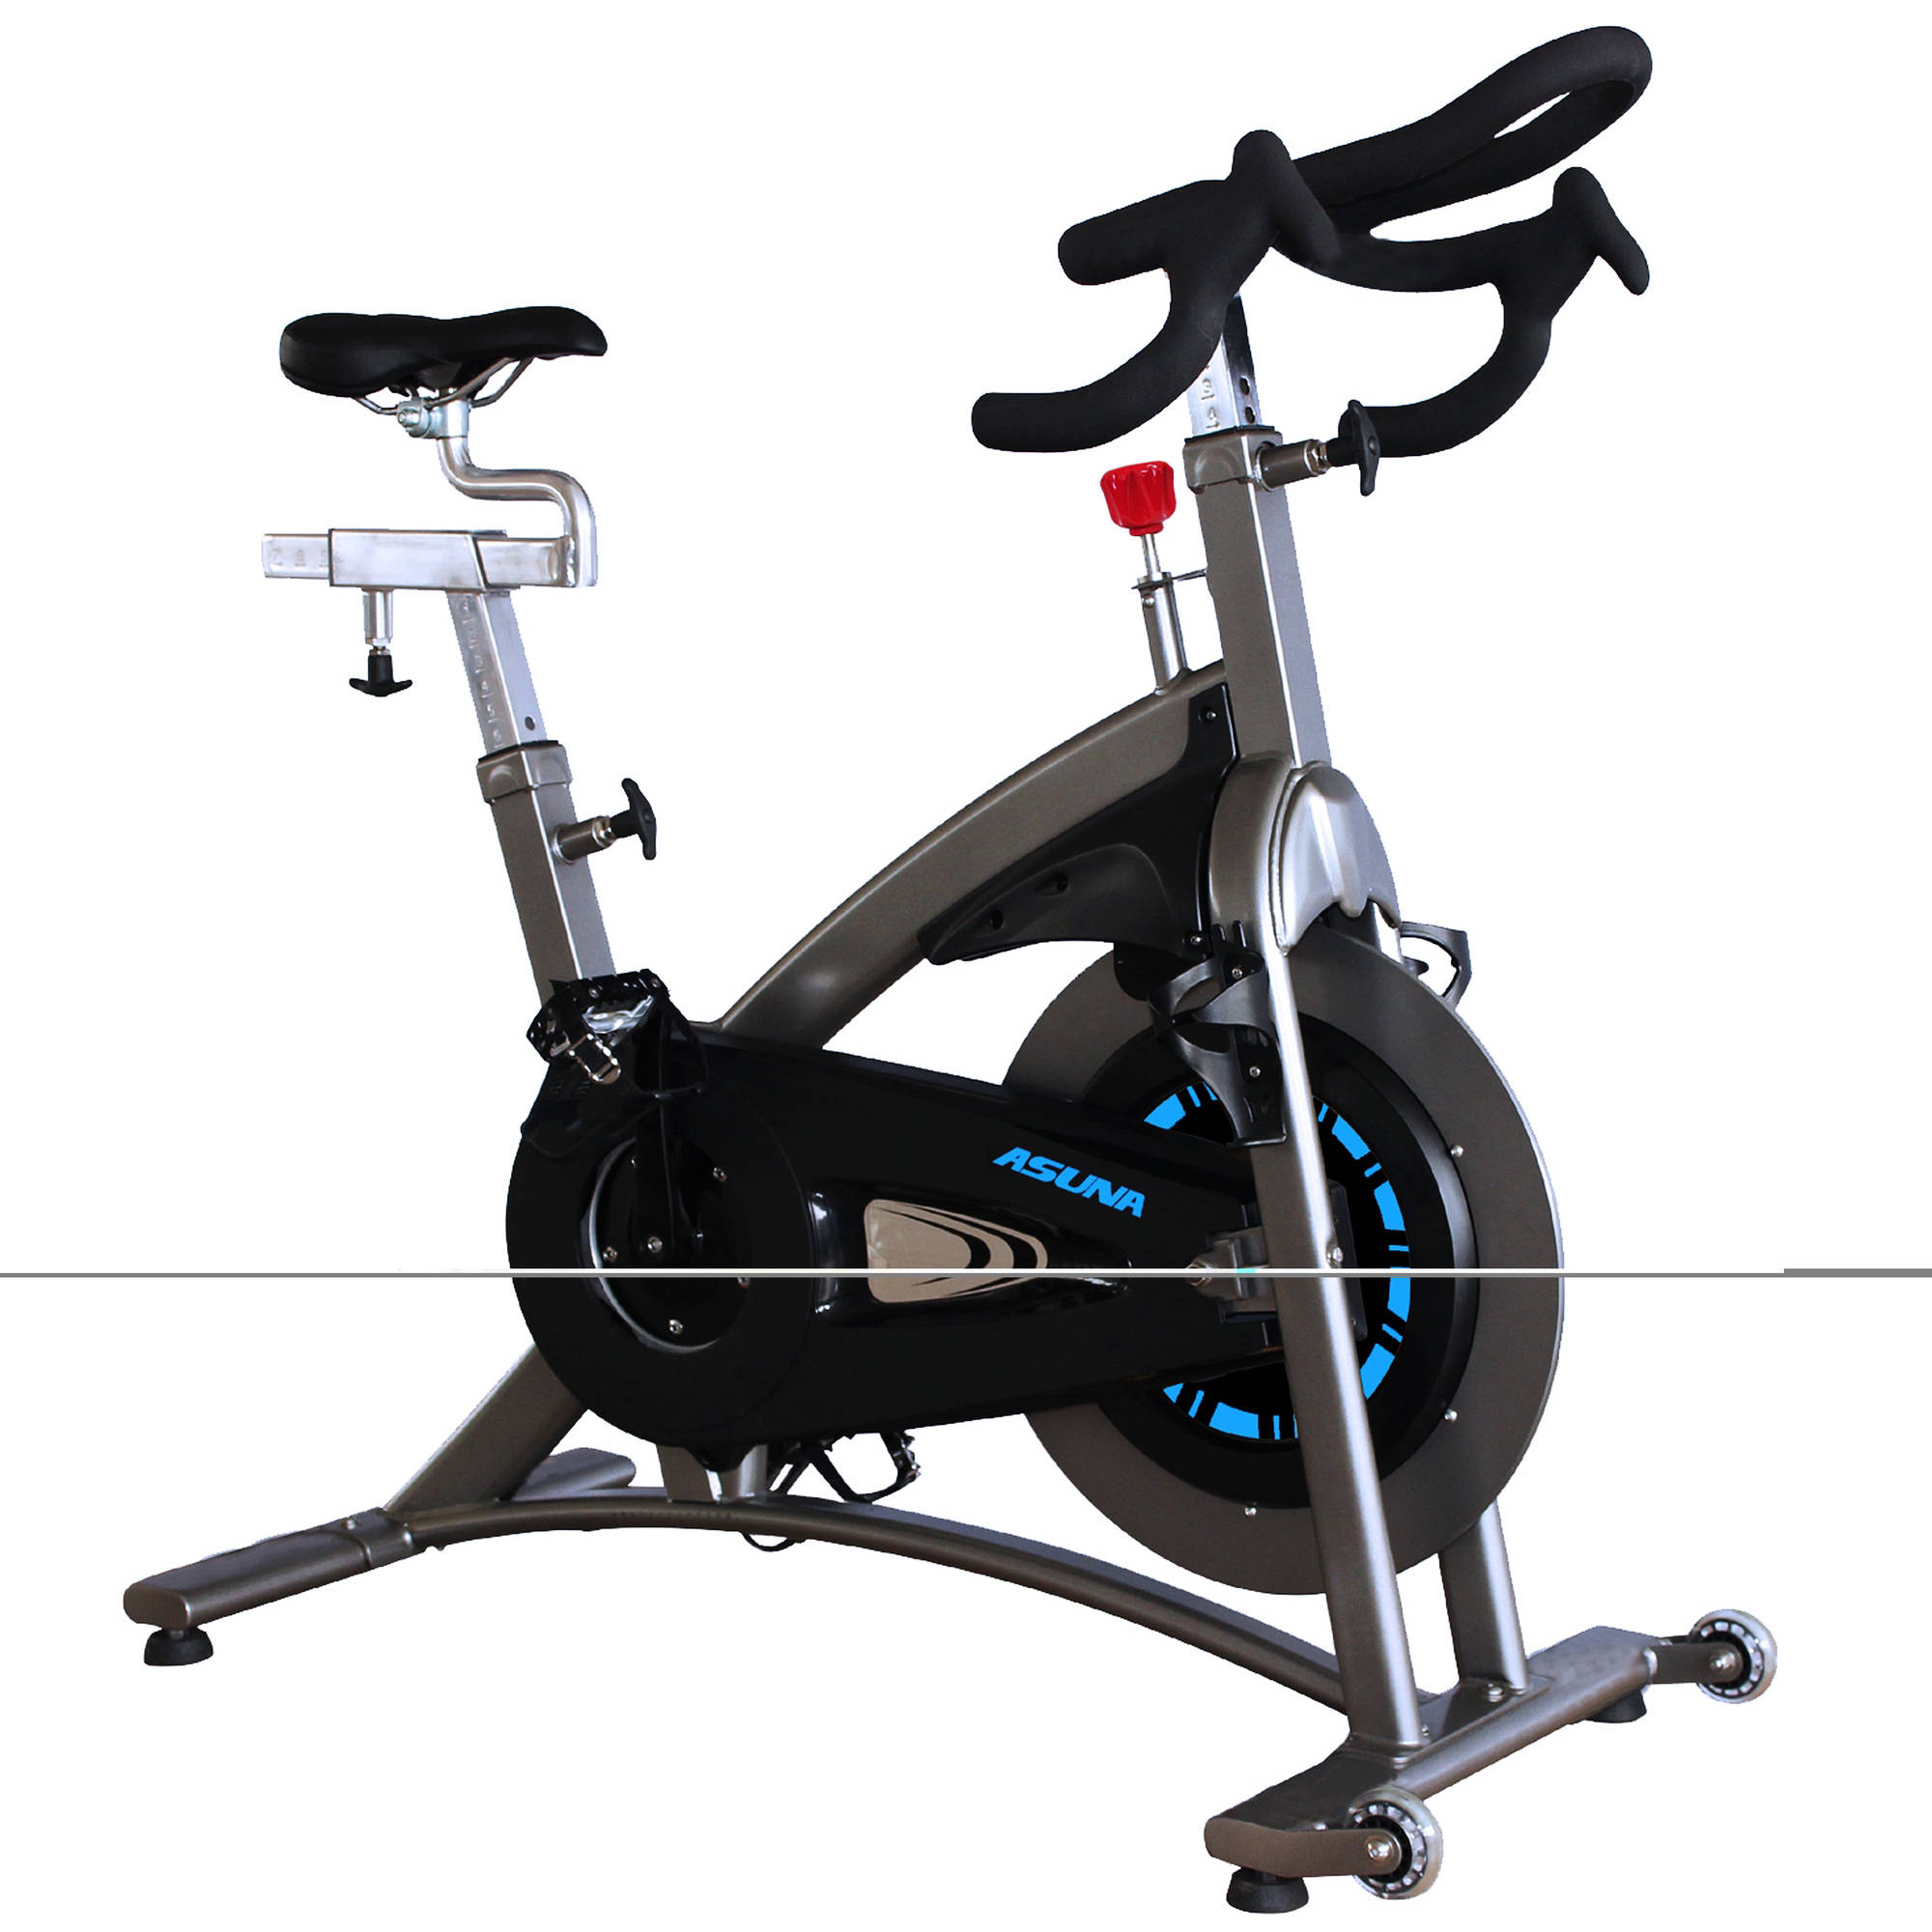 ASUNA 5100 Magnetic Belt Drive Commercial Indoor Cycling bike